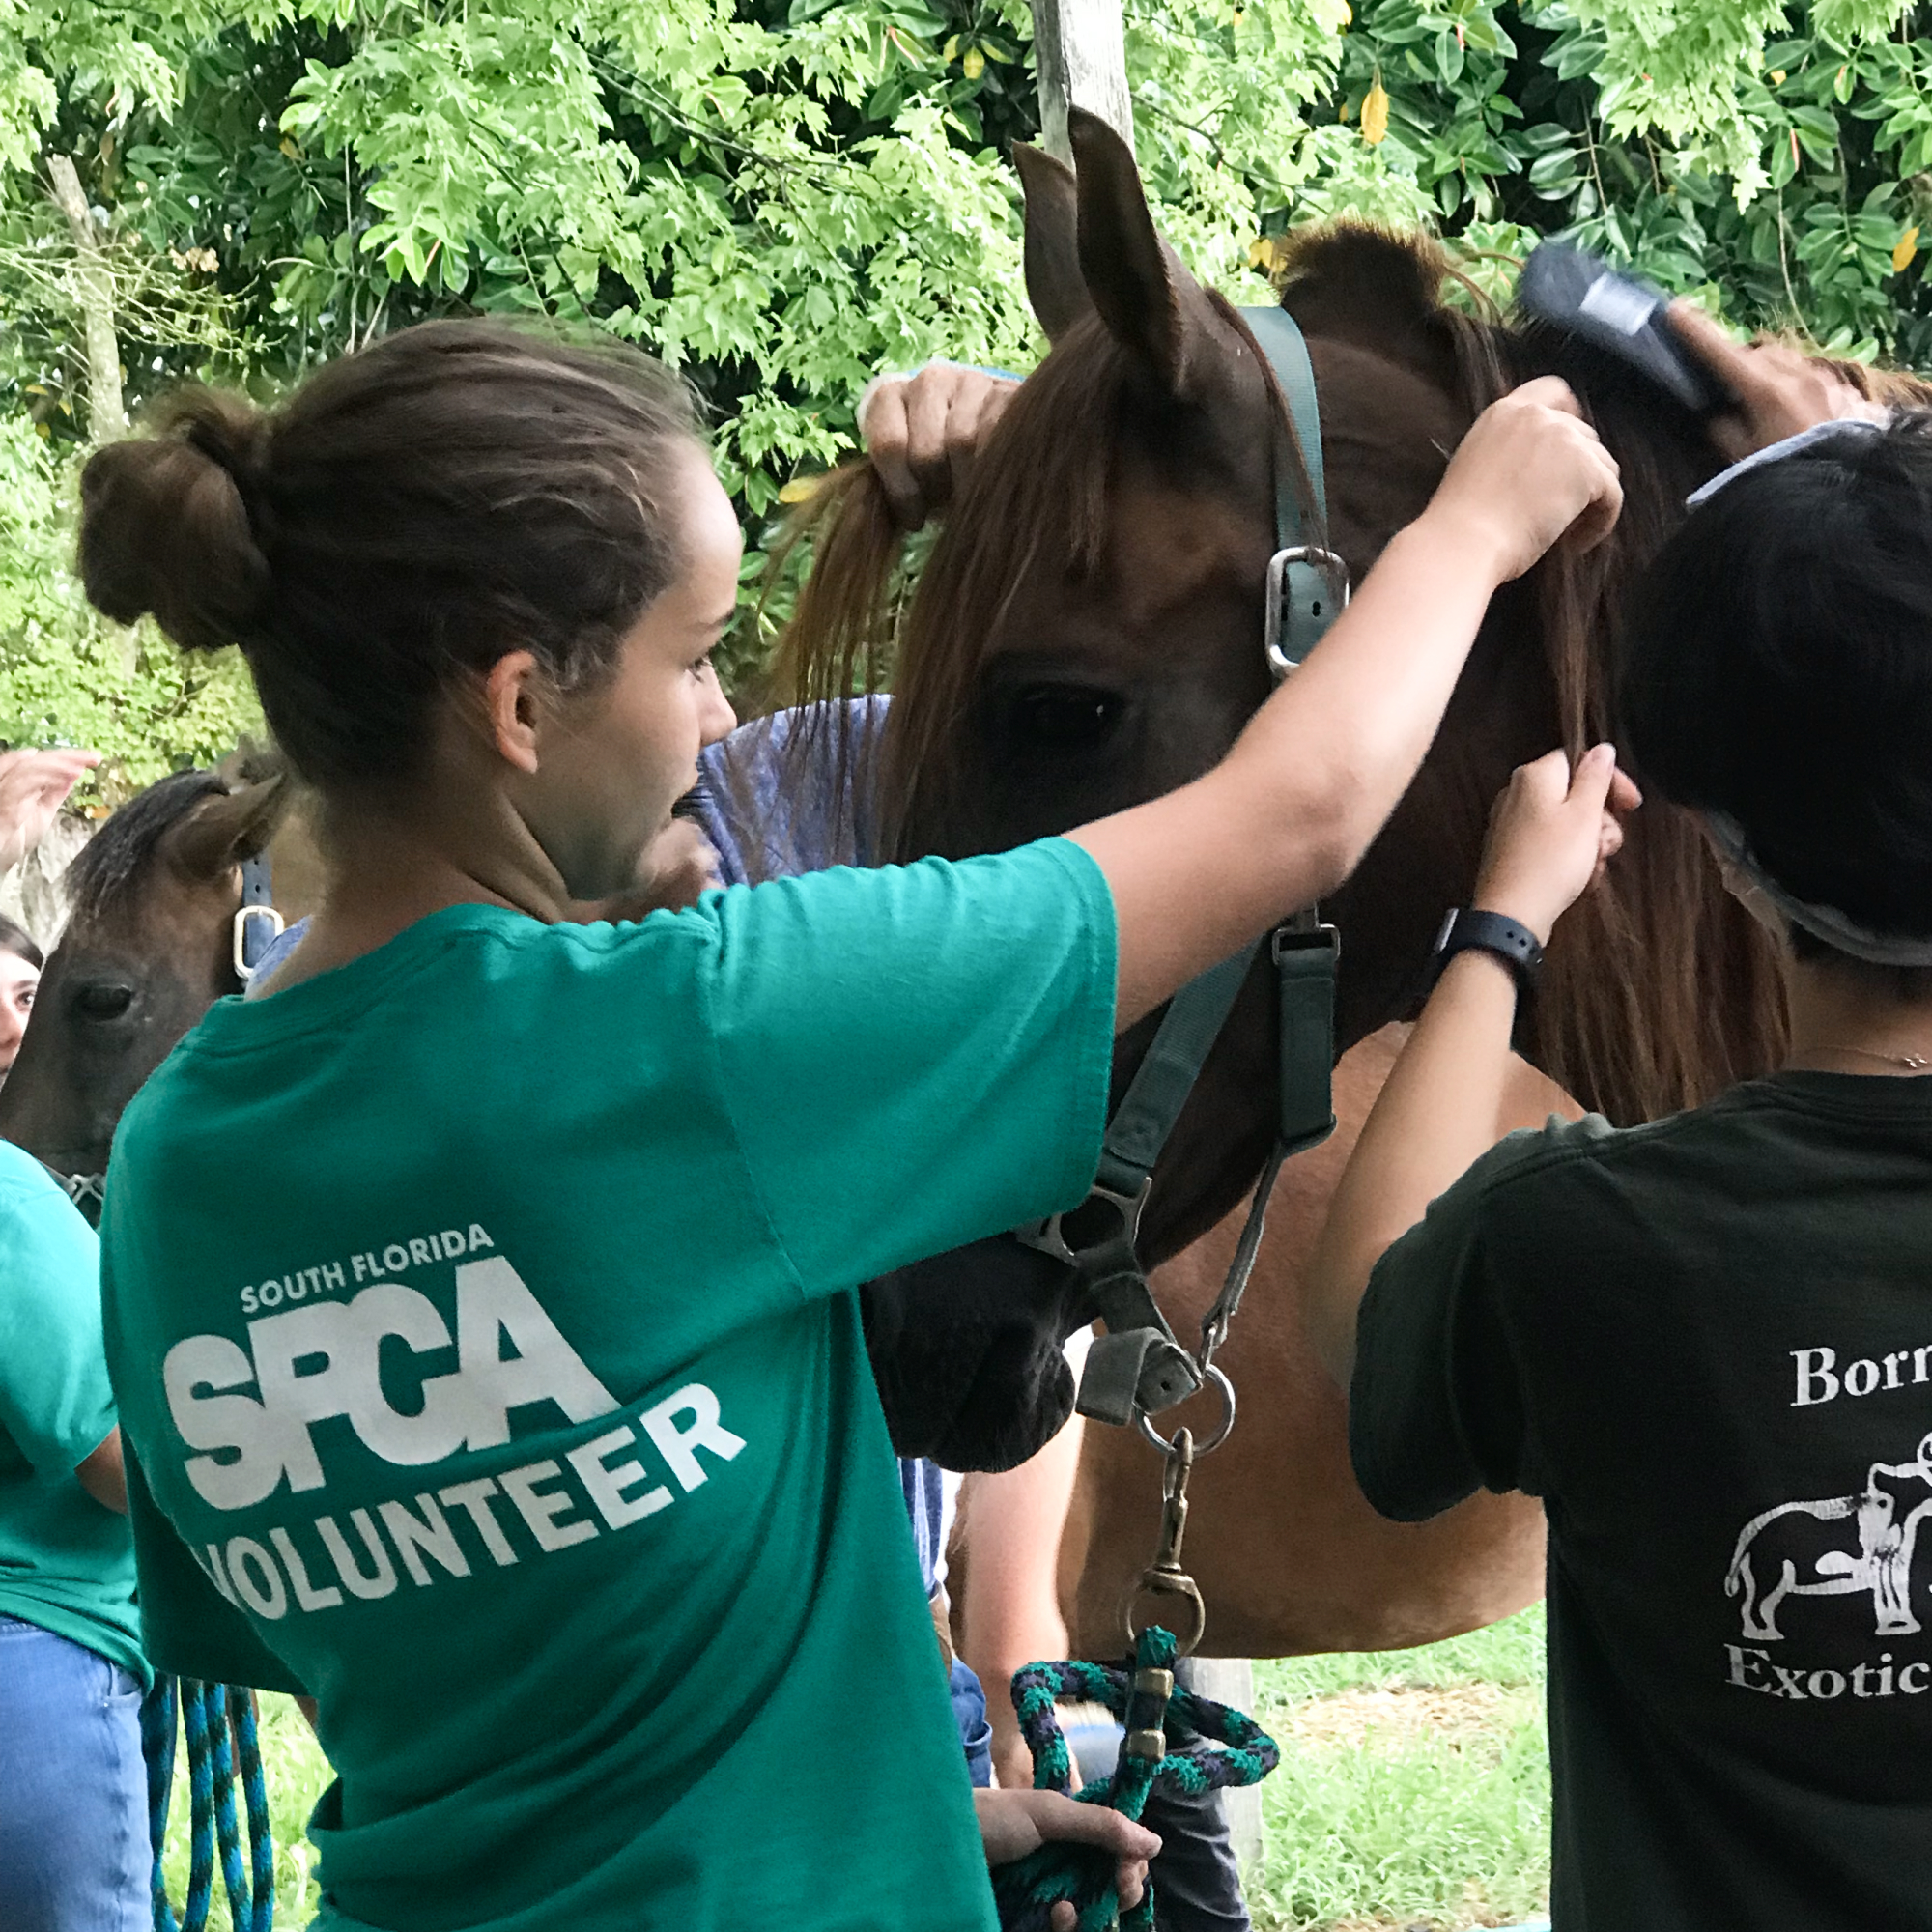 Volunteering at the South Florida Society for the Prevention of Cruelty to Animals